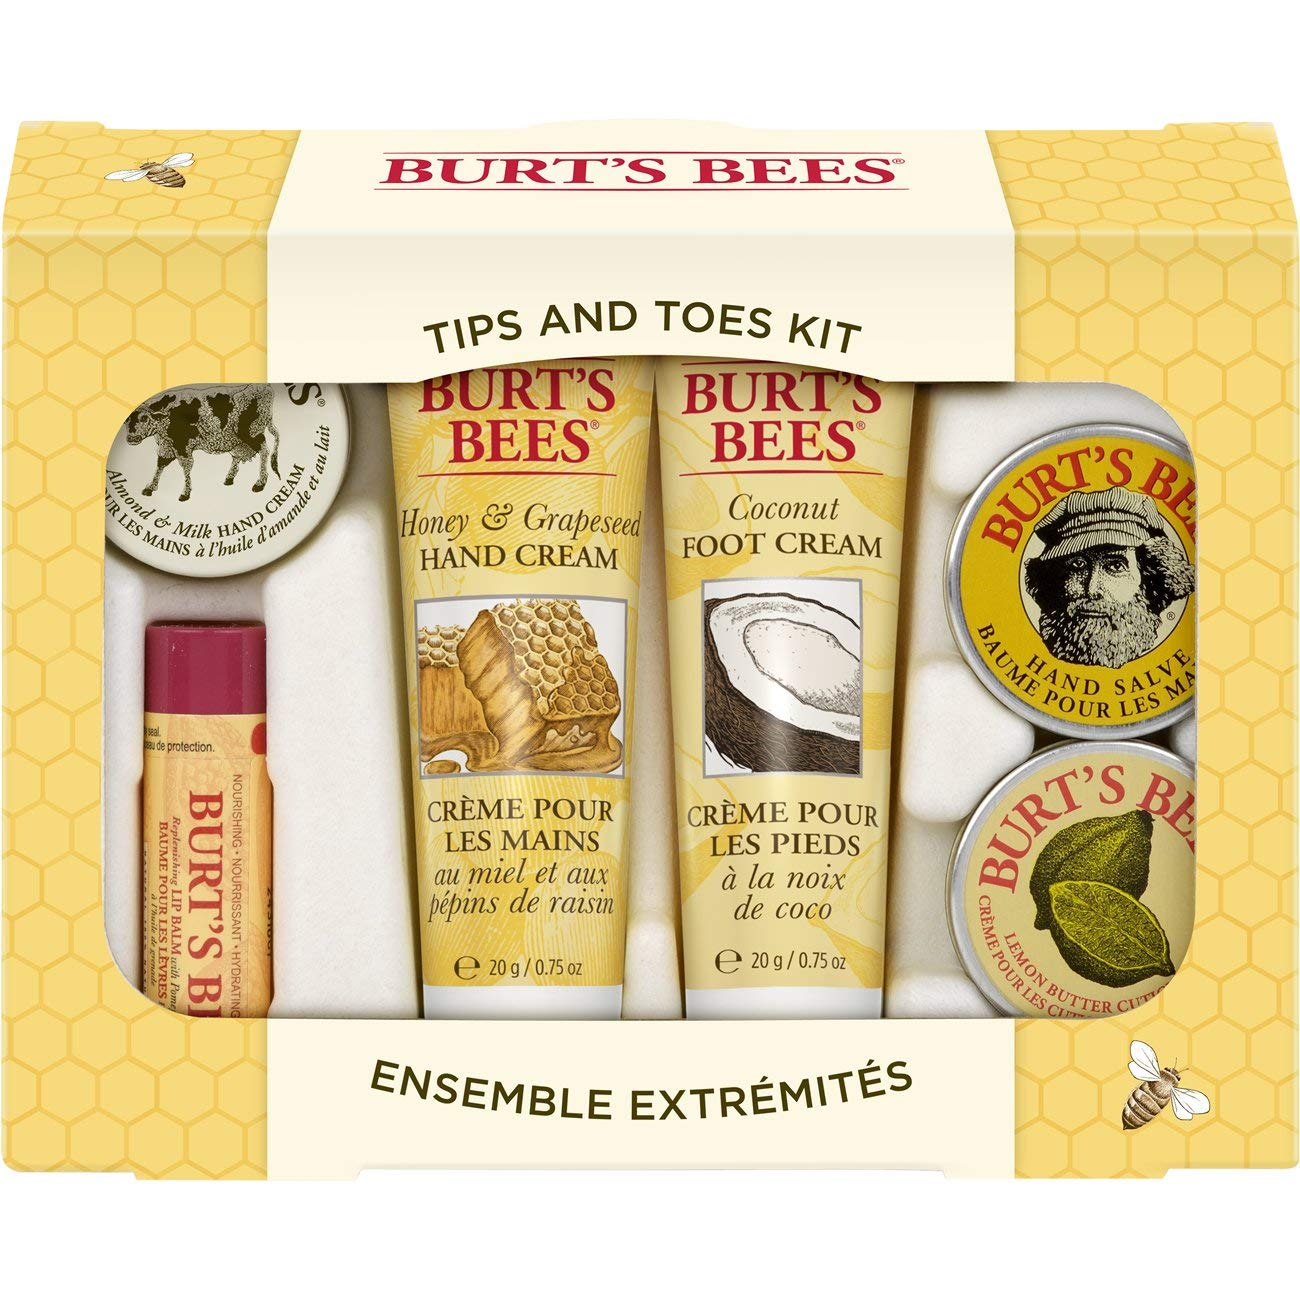 Burt's Bees Tips and Toes Kit Burt's Bees 94900-11